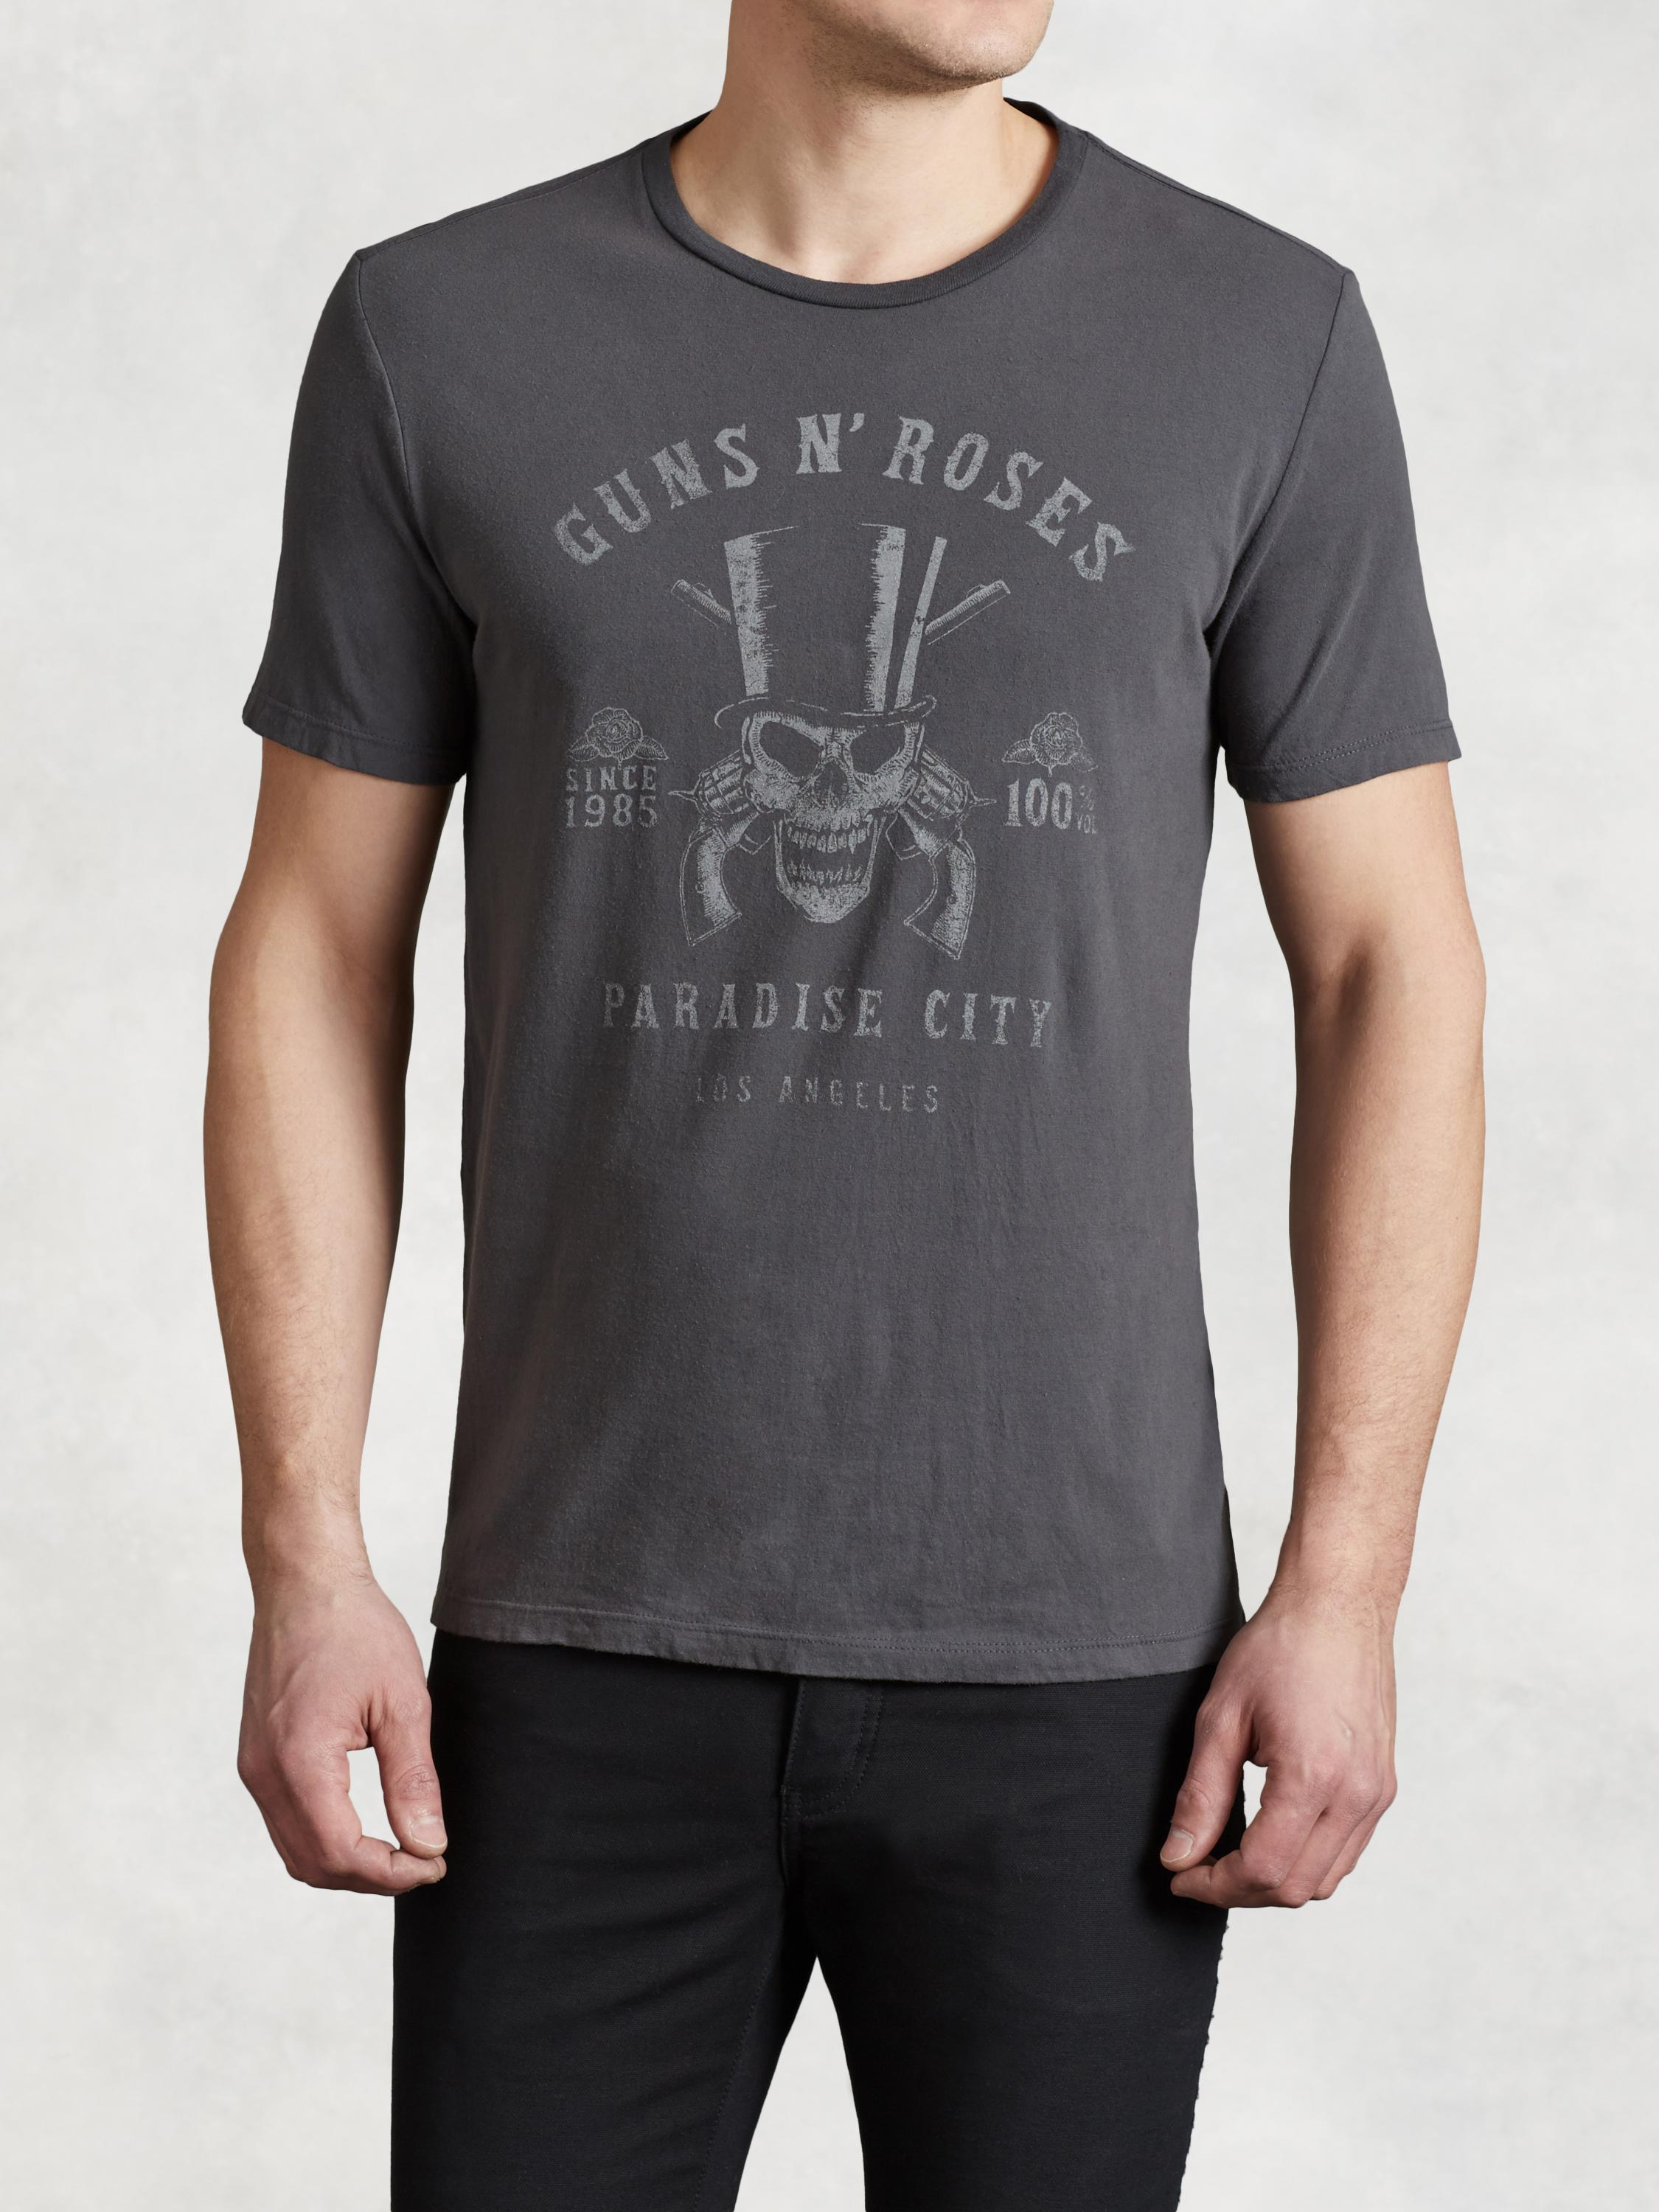 Guns 'n' Roses Graphic Tee